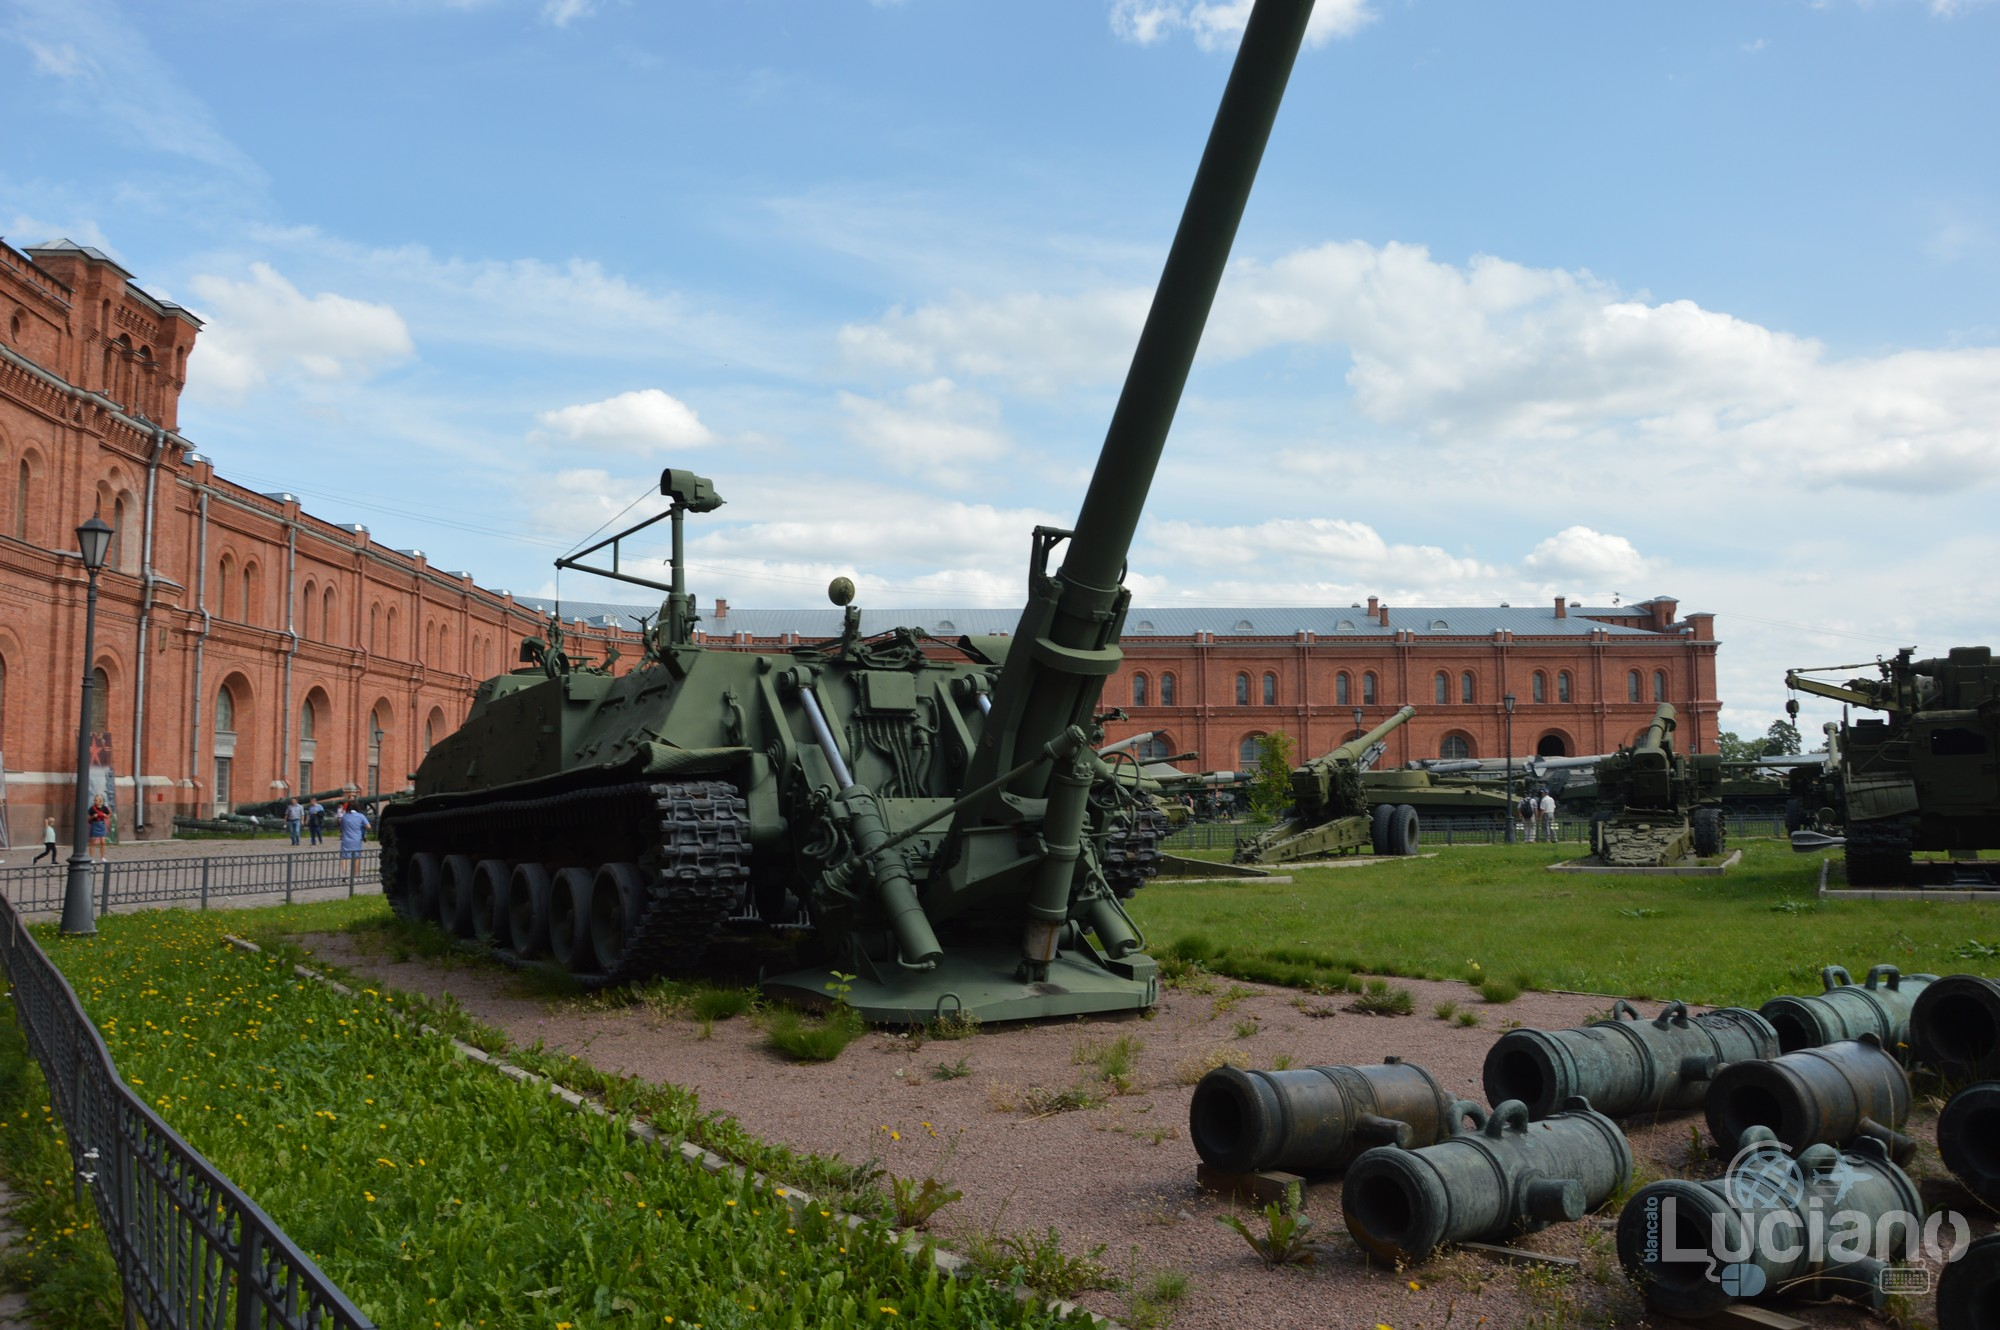 Military-Historical-Museum-of-Artillery-Engineer-and-Signal-Corps-St-Petersburg-Russia-Luciano-Blancato- (91)